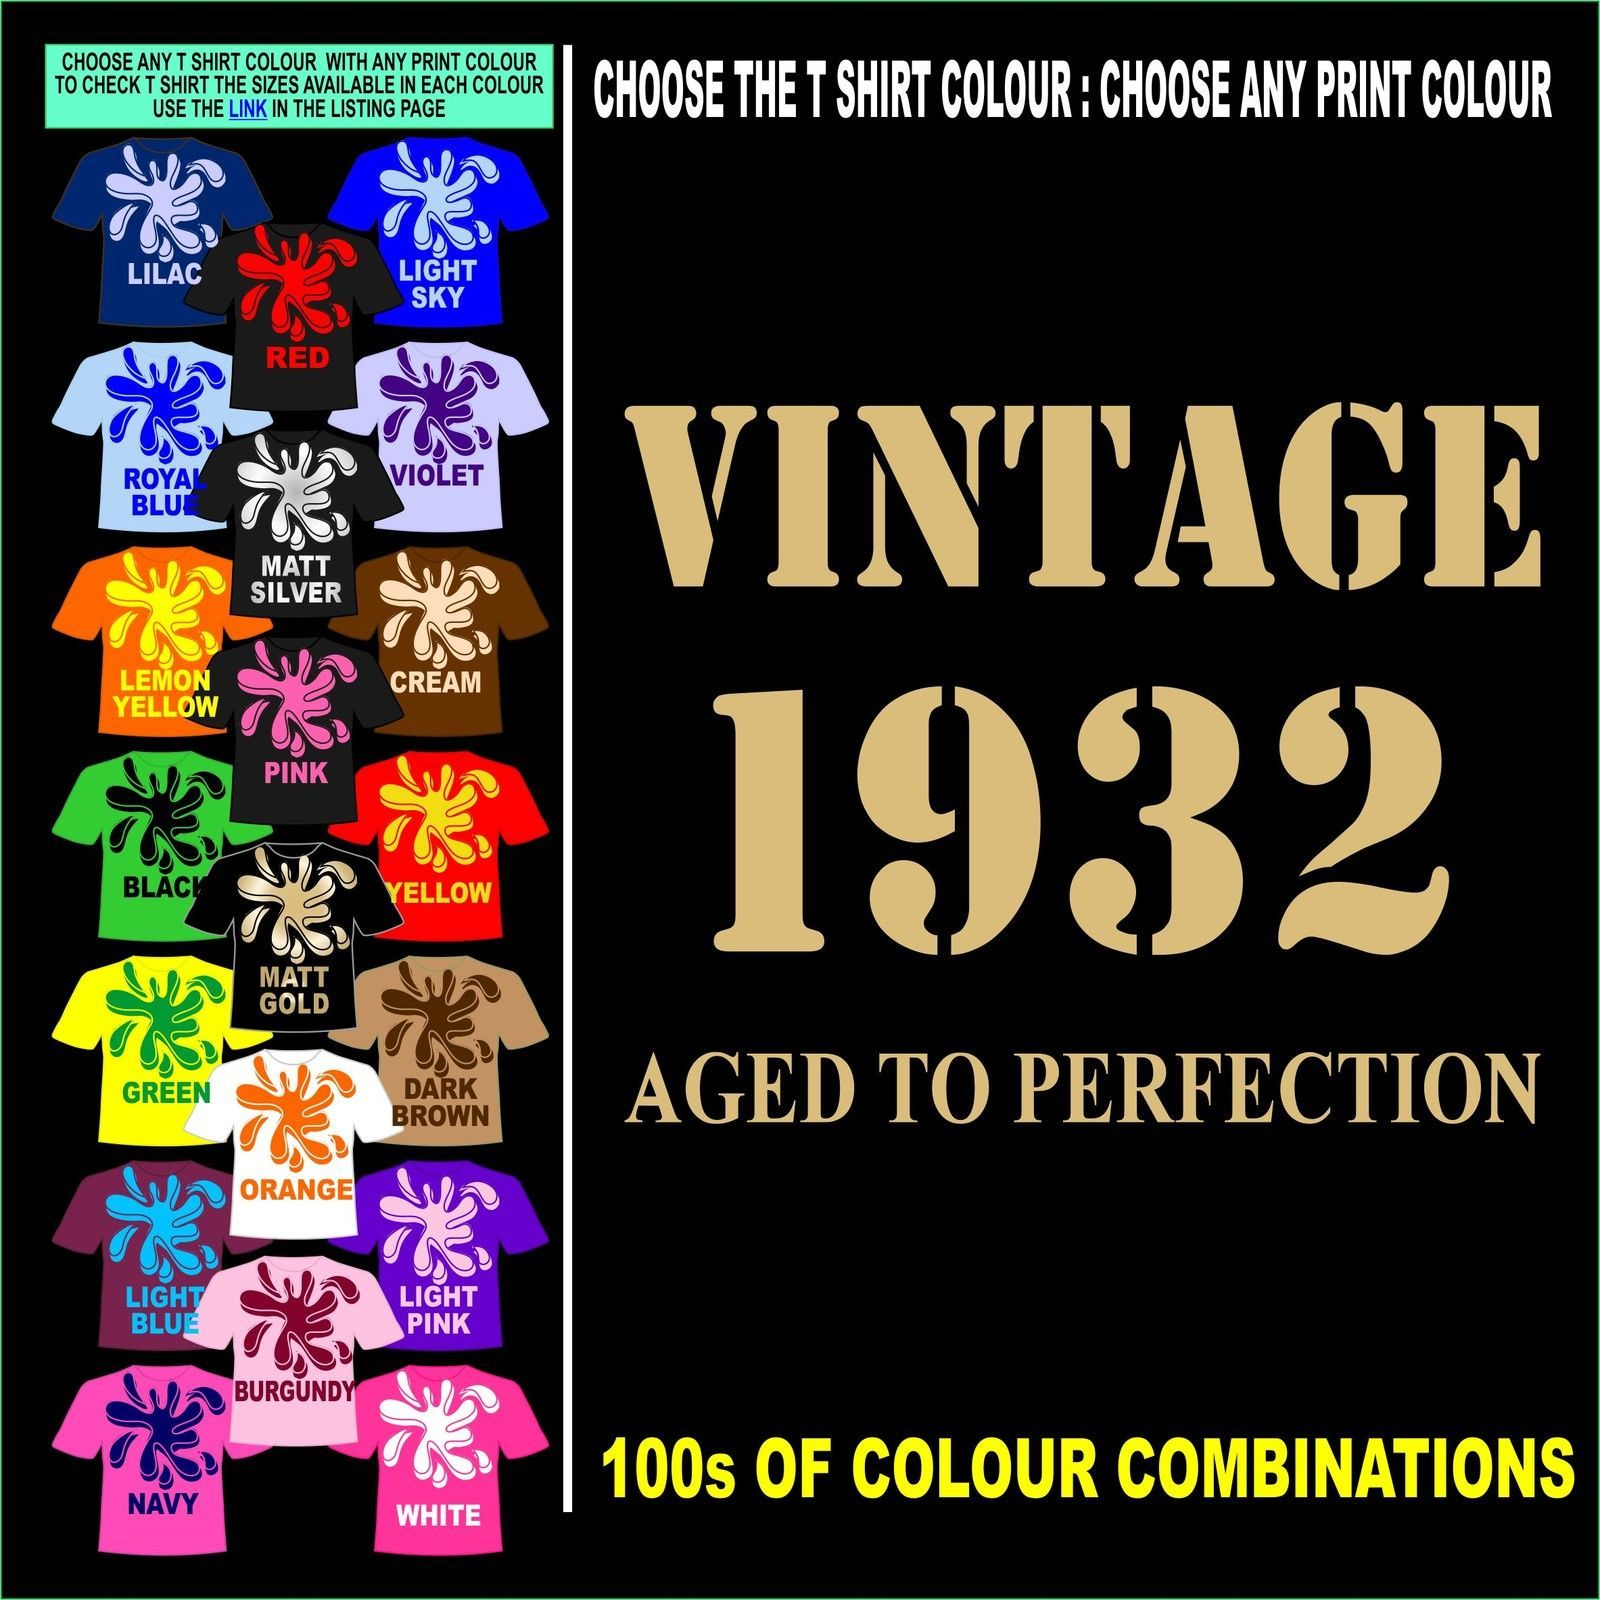 Quotes 80Th Birthday 80Th Birthday Quotes .shirt Vintage 1932 Ideal Gift 80Th